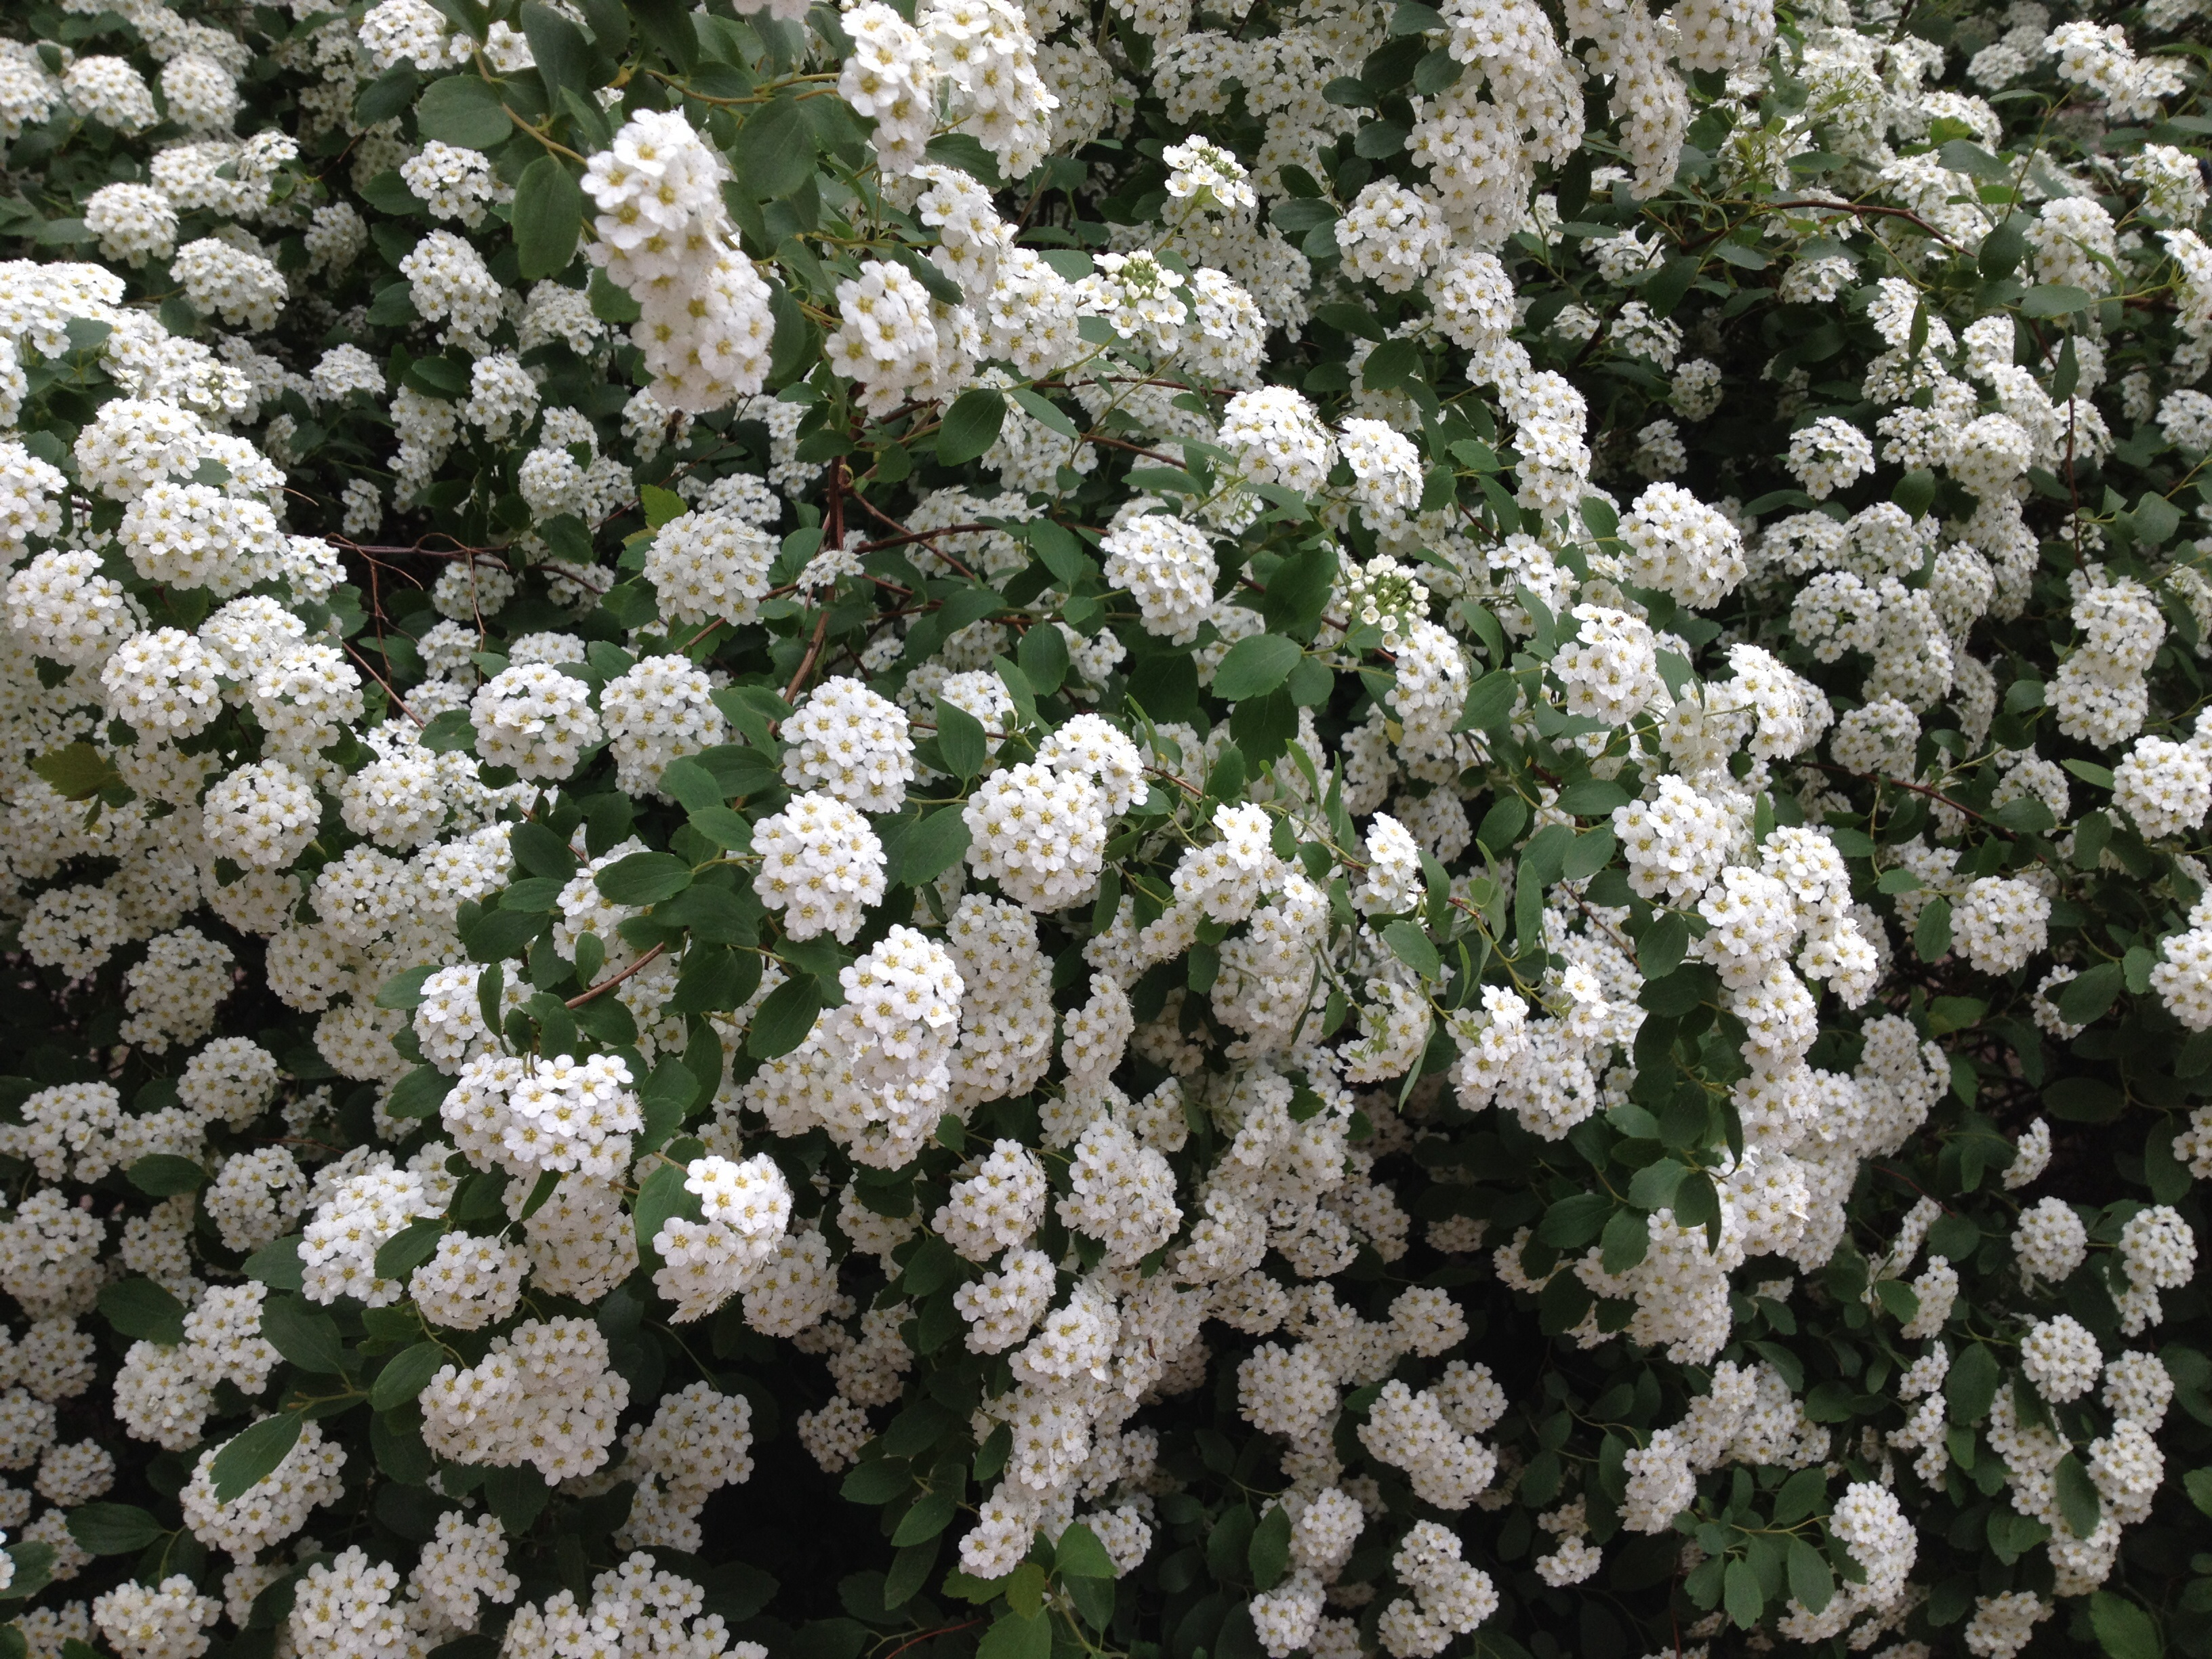 Whats The Name Of This Bush With White Flowers Like A Bride